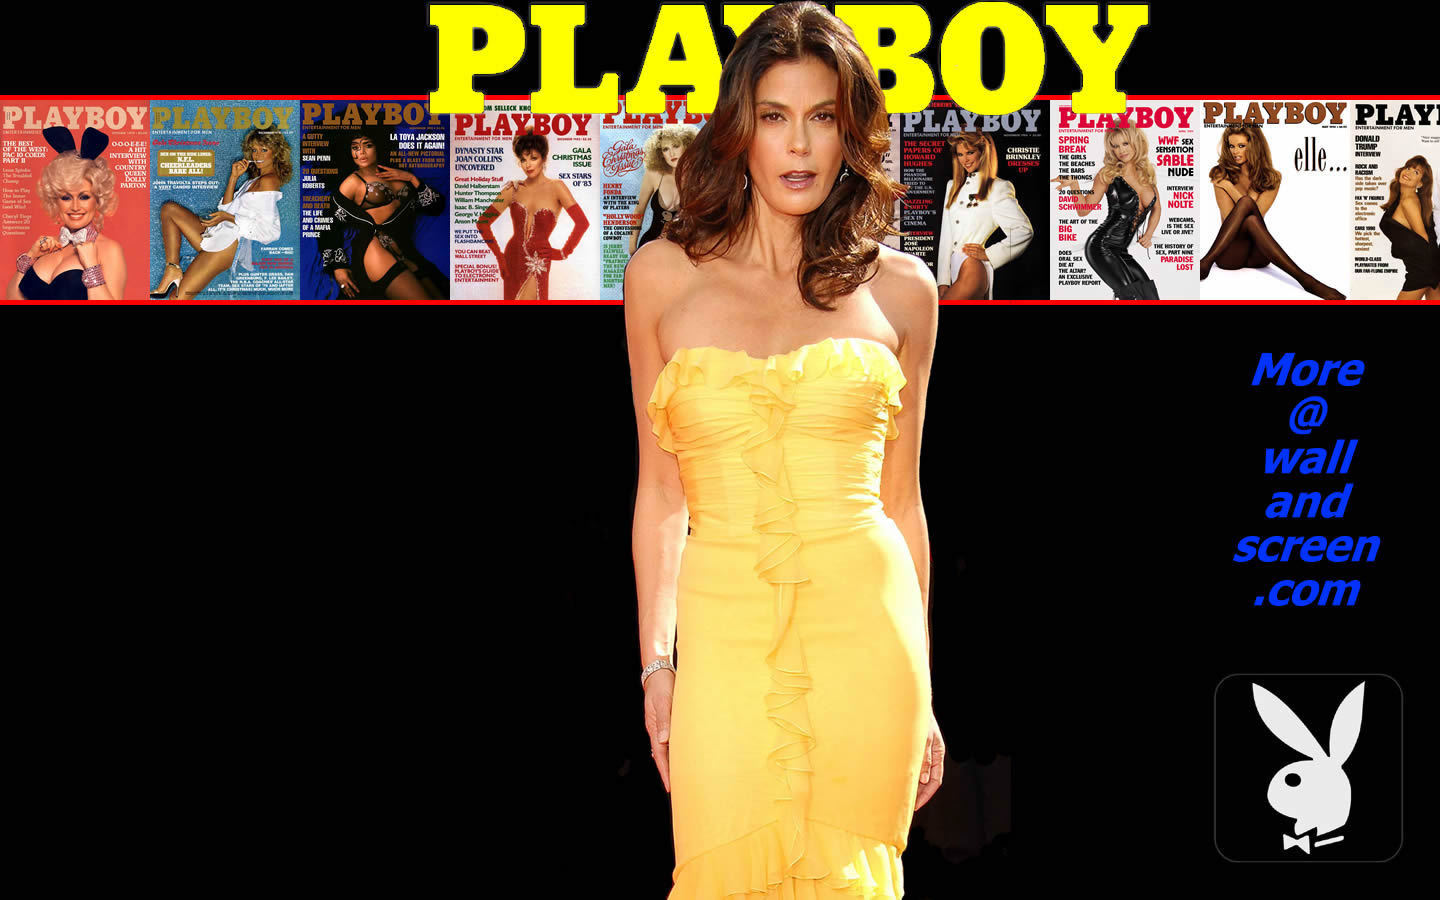 PLAYBOY(プレイボーイ) Celebrity Series 08 - Terri Hatcher